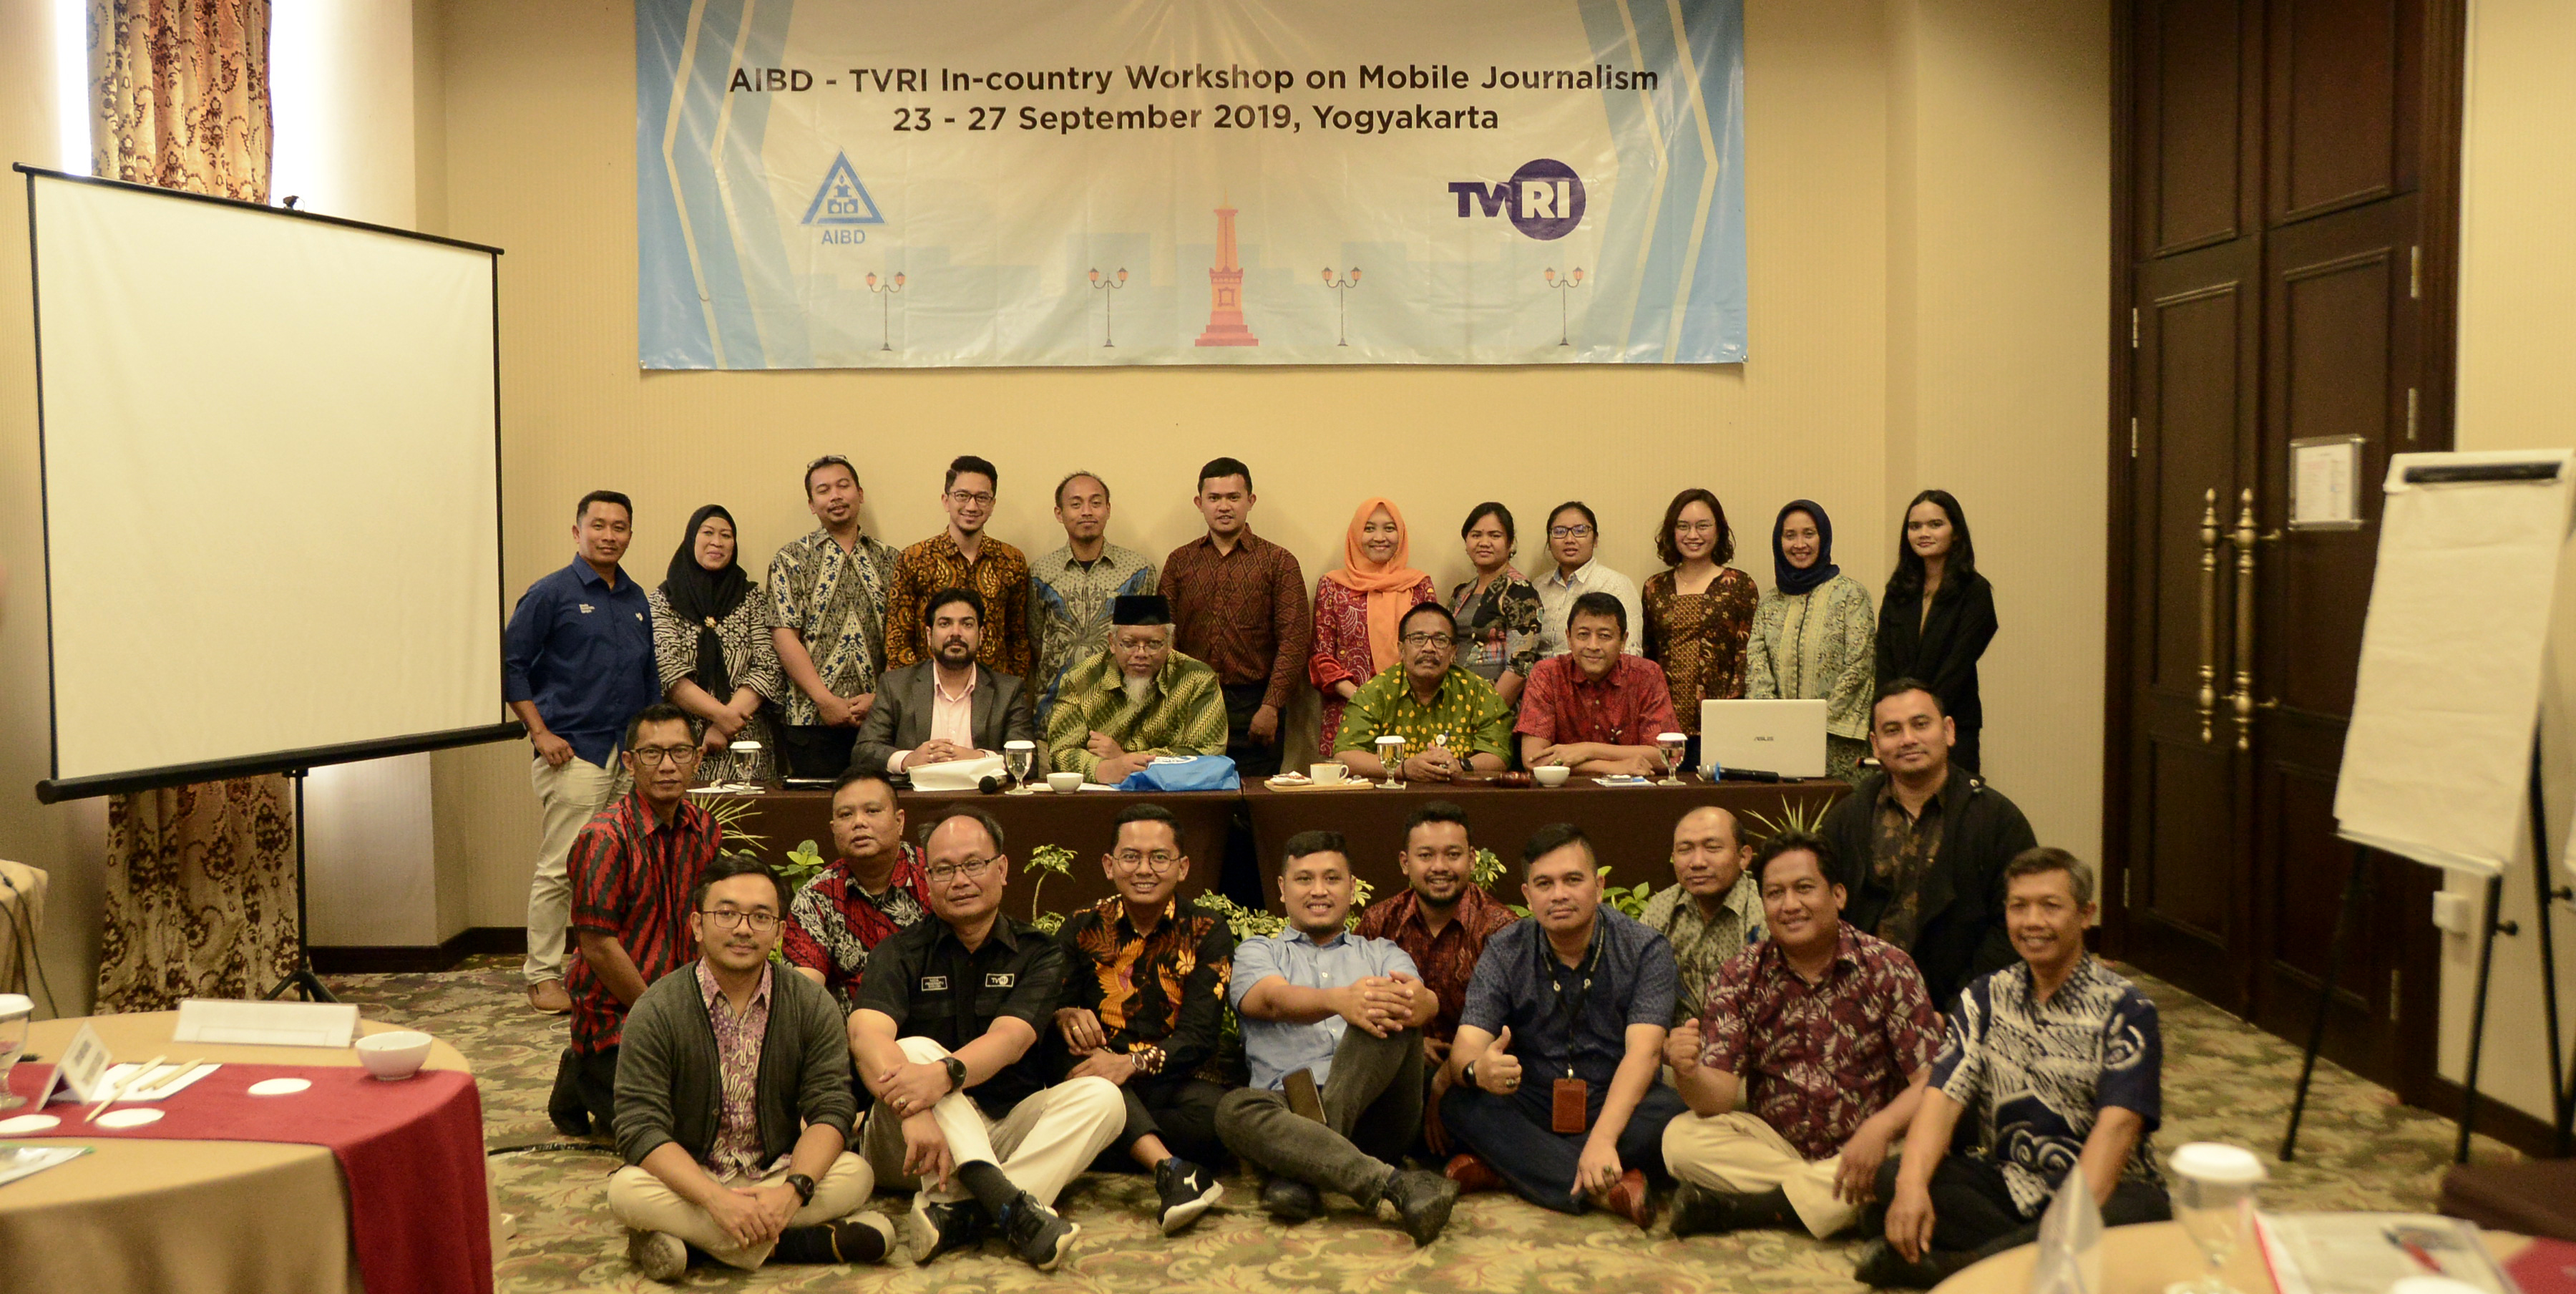 AIBD TVRI Mobile Journalism_group photo